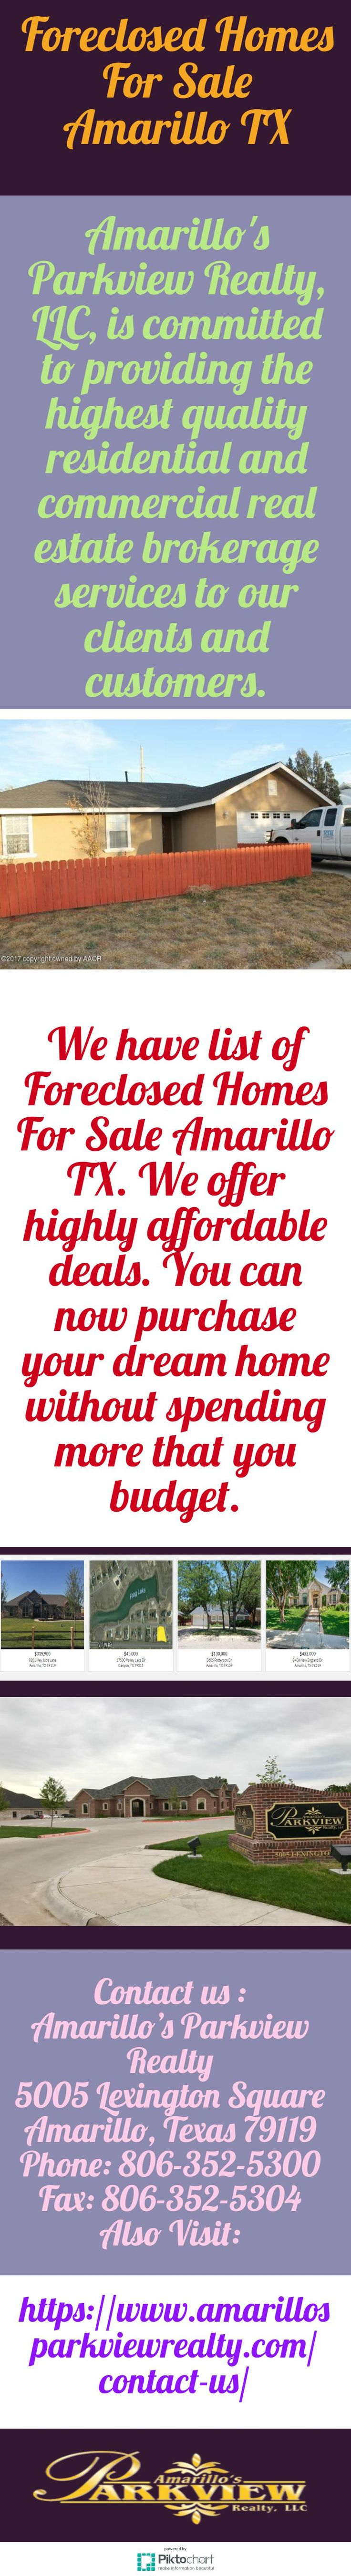 We have list of Foreclosed Homes For Sale Amarillo TX. We offer highly affordable deals. You can now purchase your dream home without spending more that you budget. For more detail, visit our website:  https://www.amarillosparkviewrealty.com/contact-us/